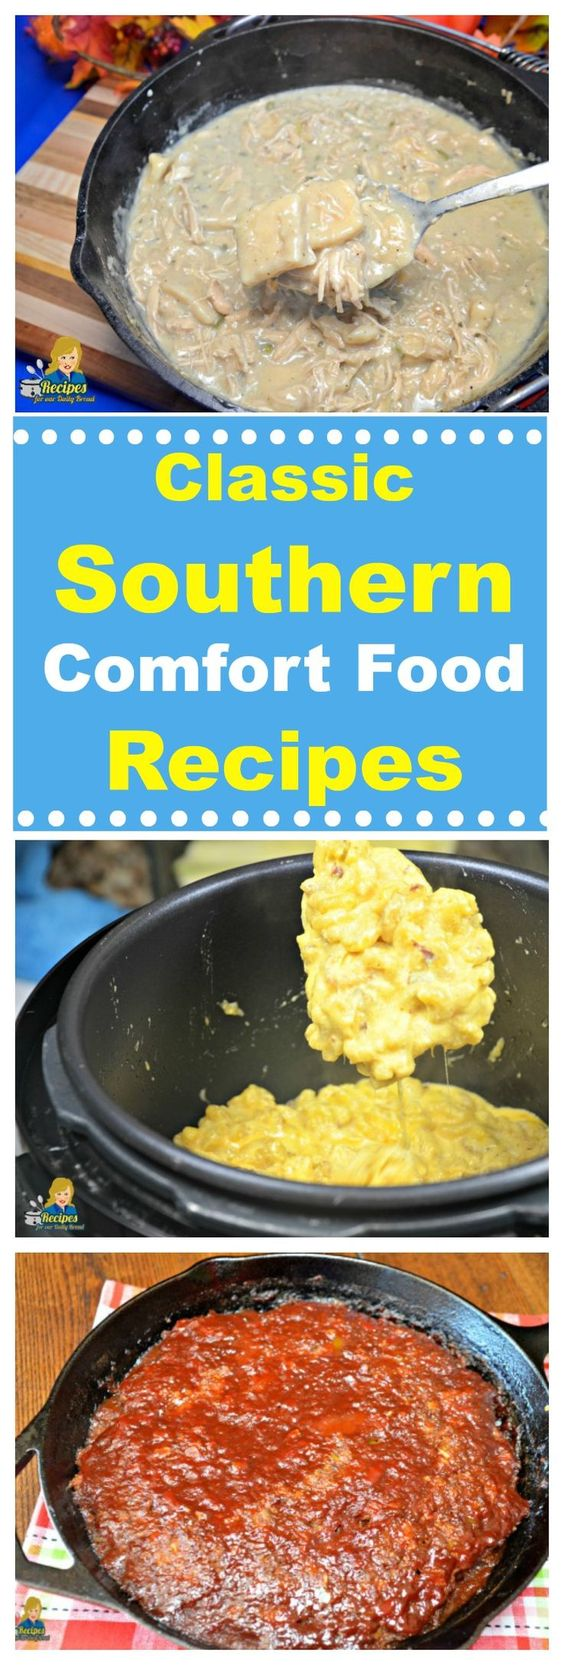 50 CLASSIC SOUTHERN COMFORT FOOD RECIPES YOU MUST TRY